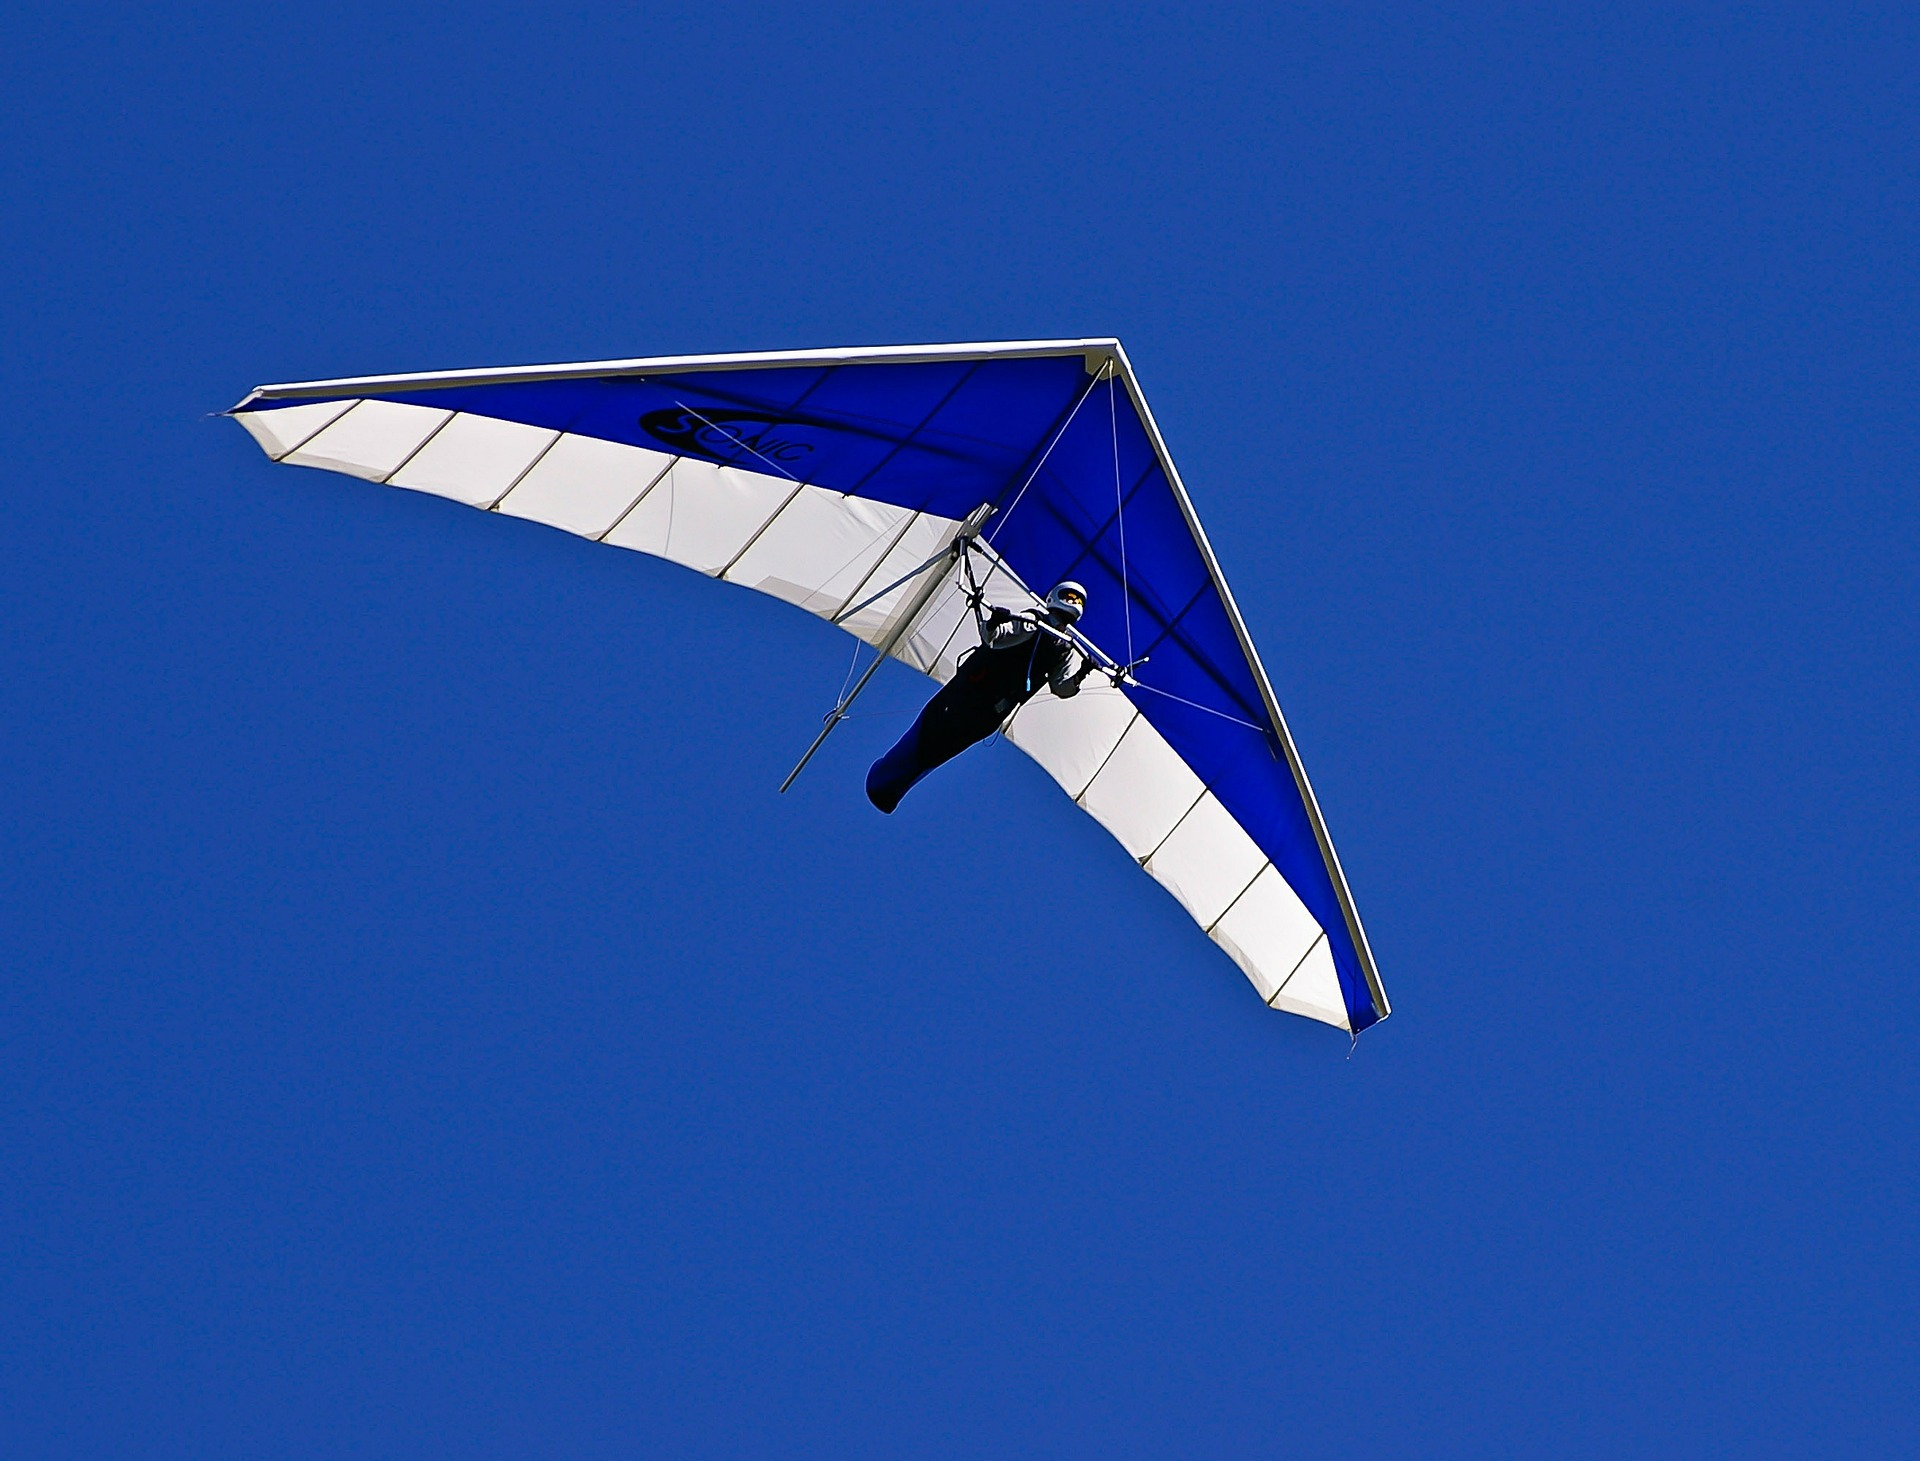 Hang Gliding in Nebraska